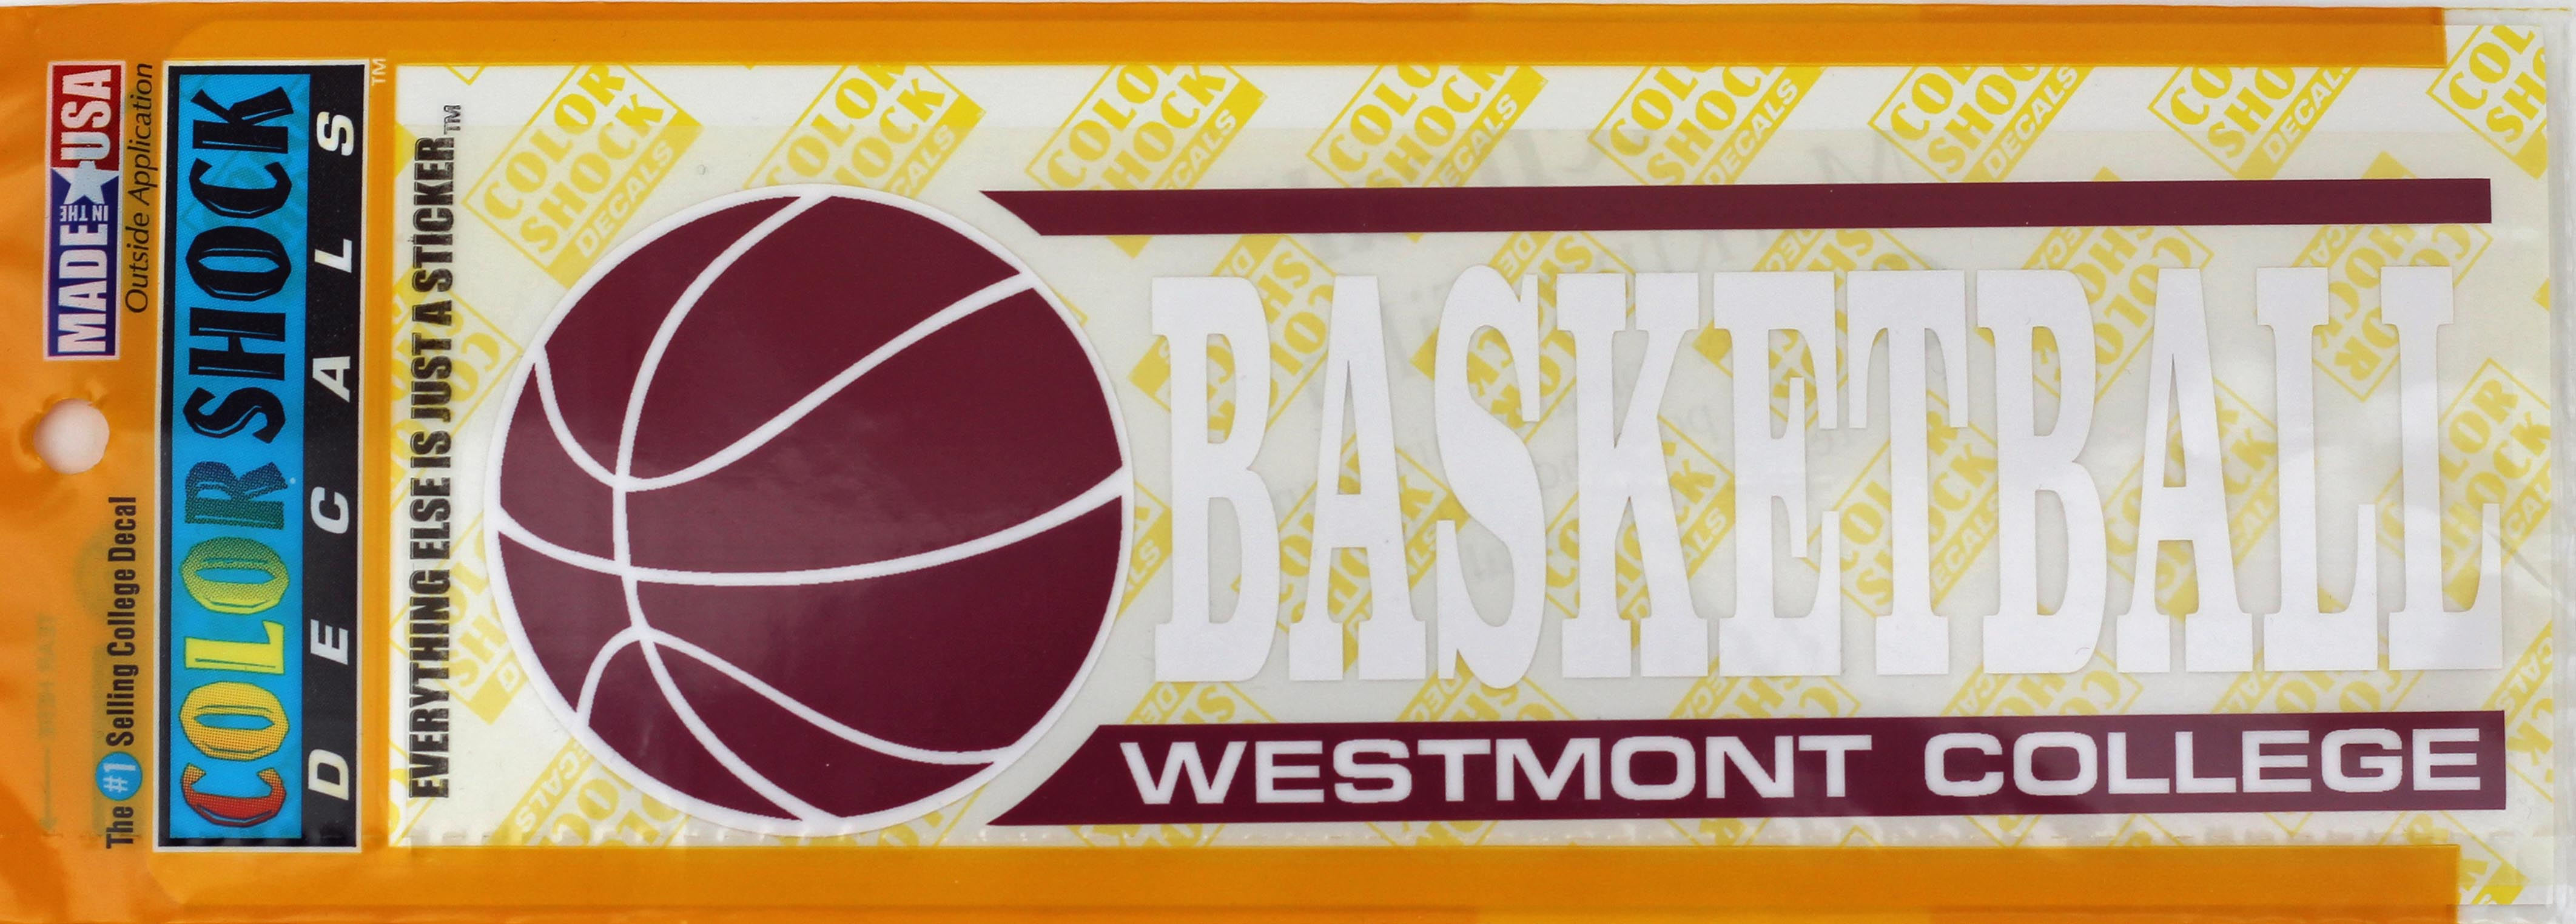 Image for the Color Shock Basketball Decal product